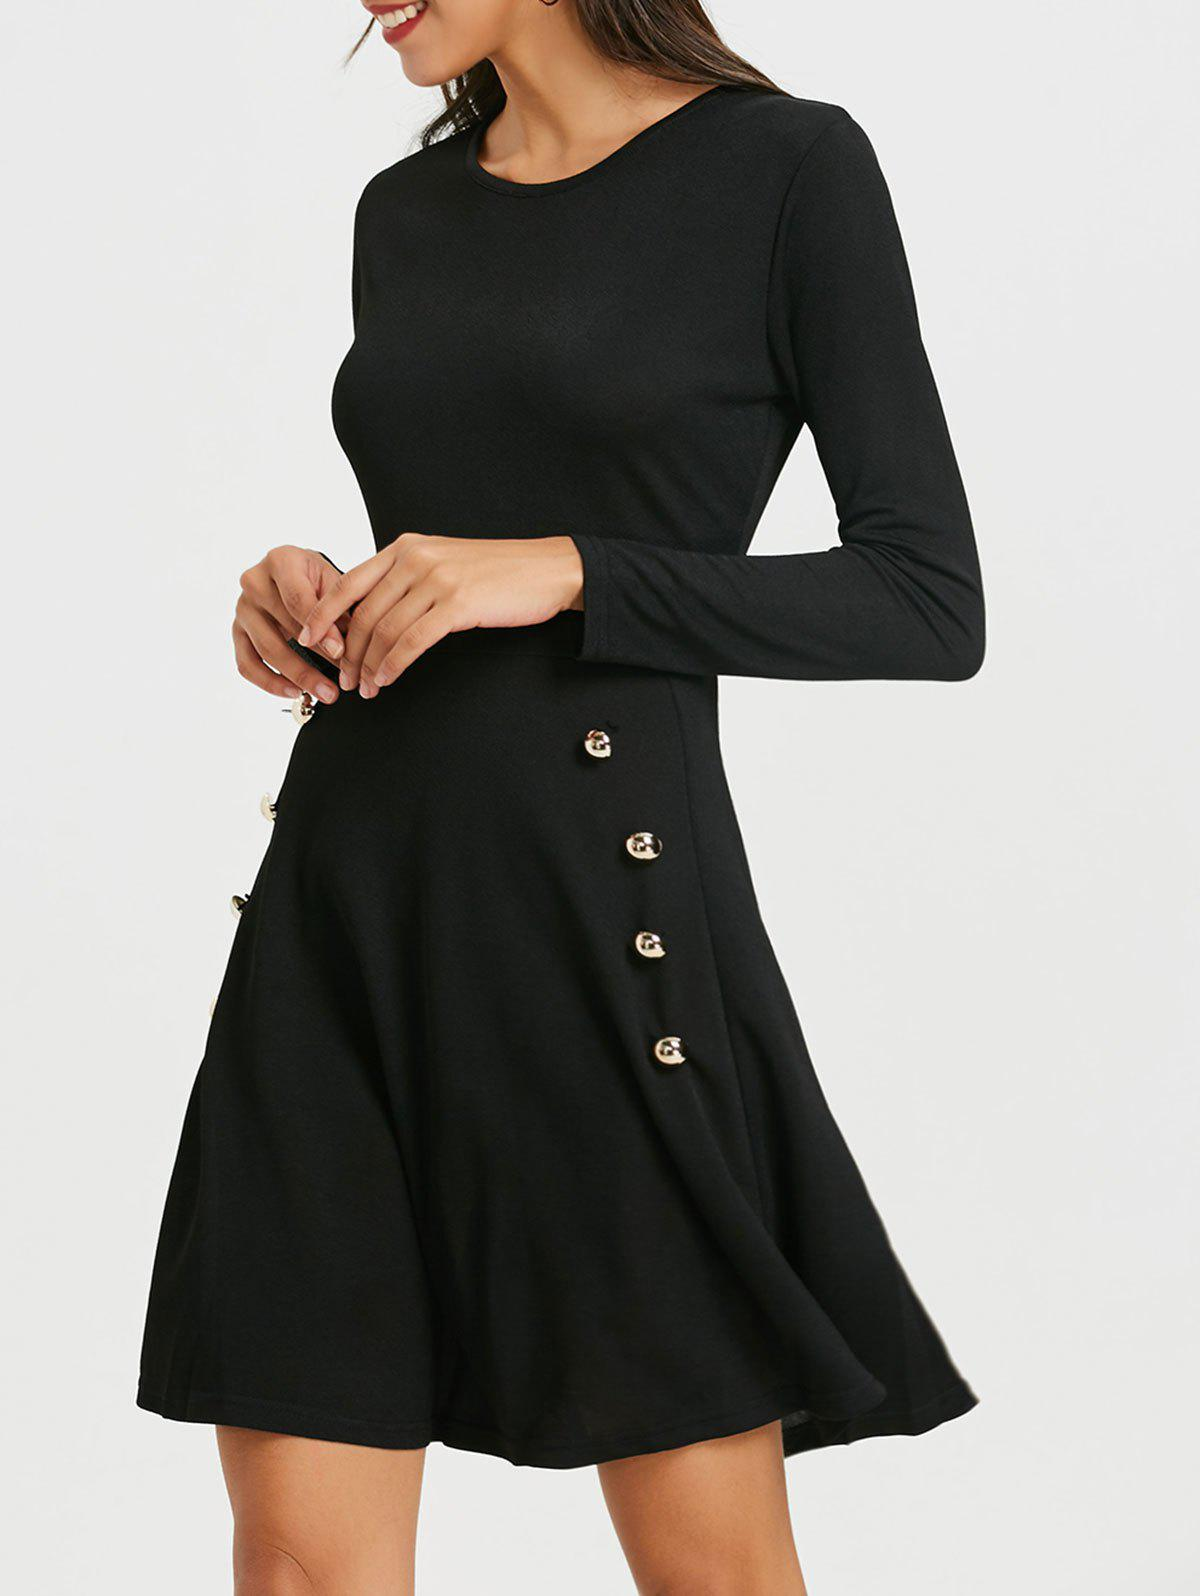 New Long Sleeve Skater Dress with Button